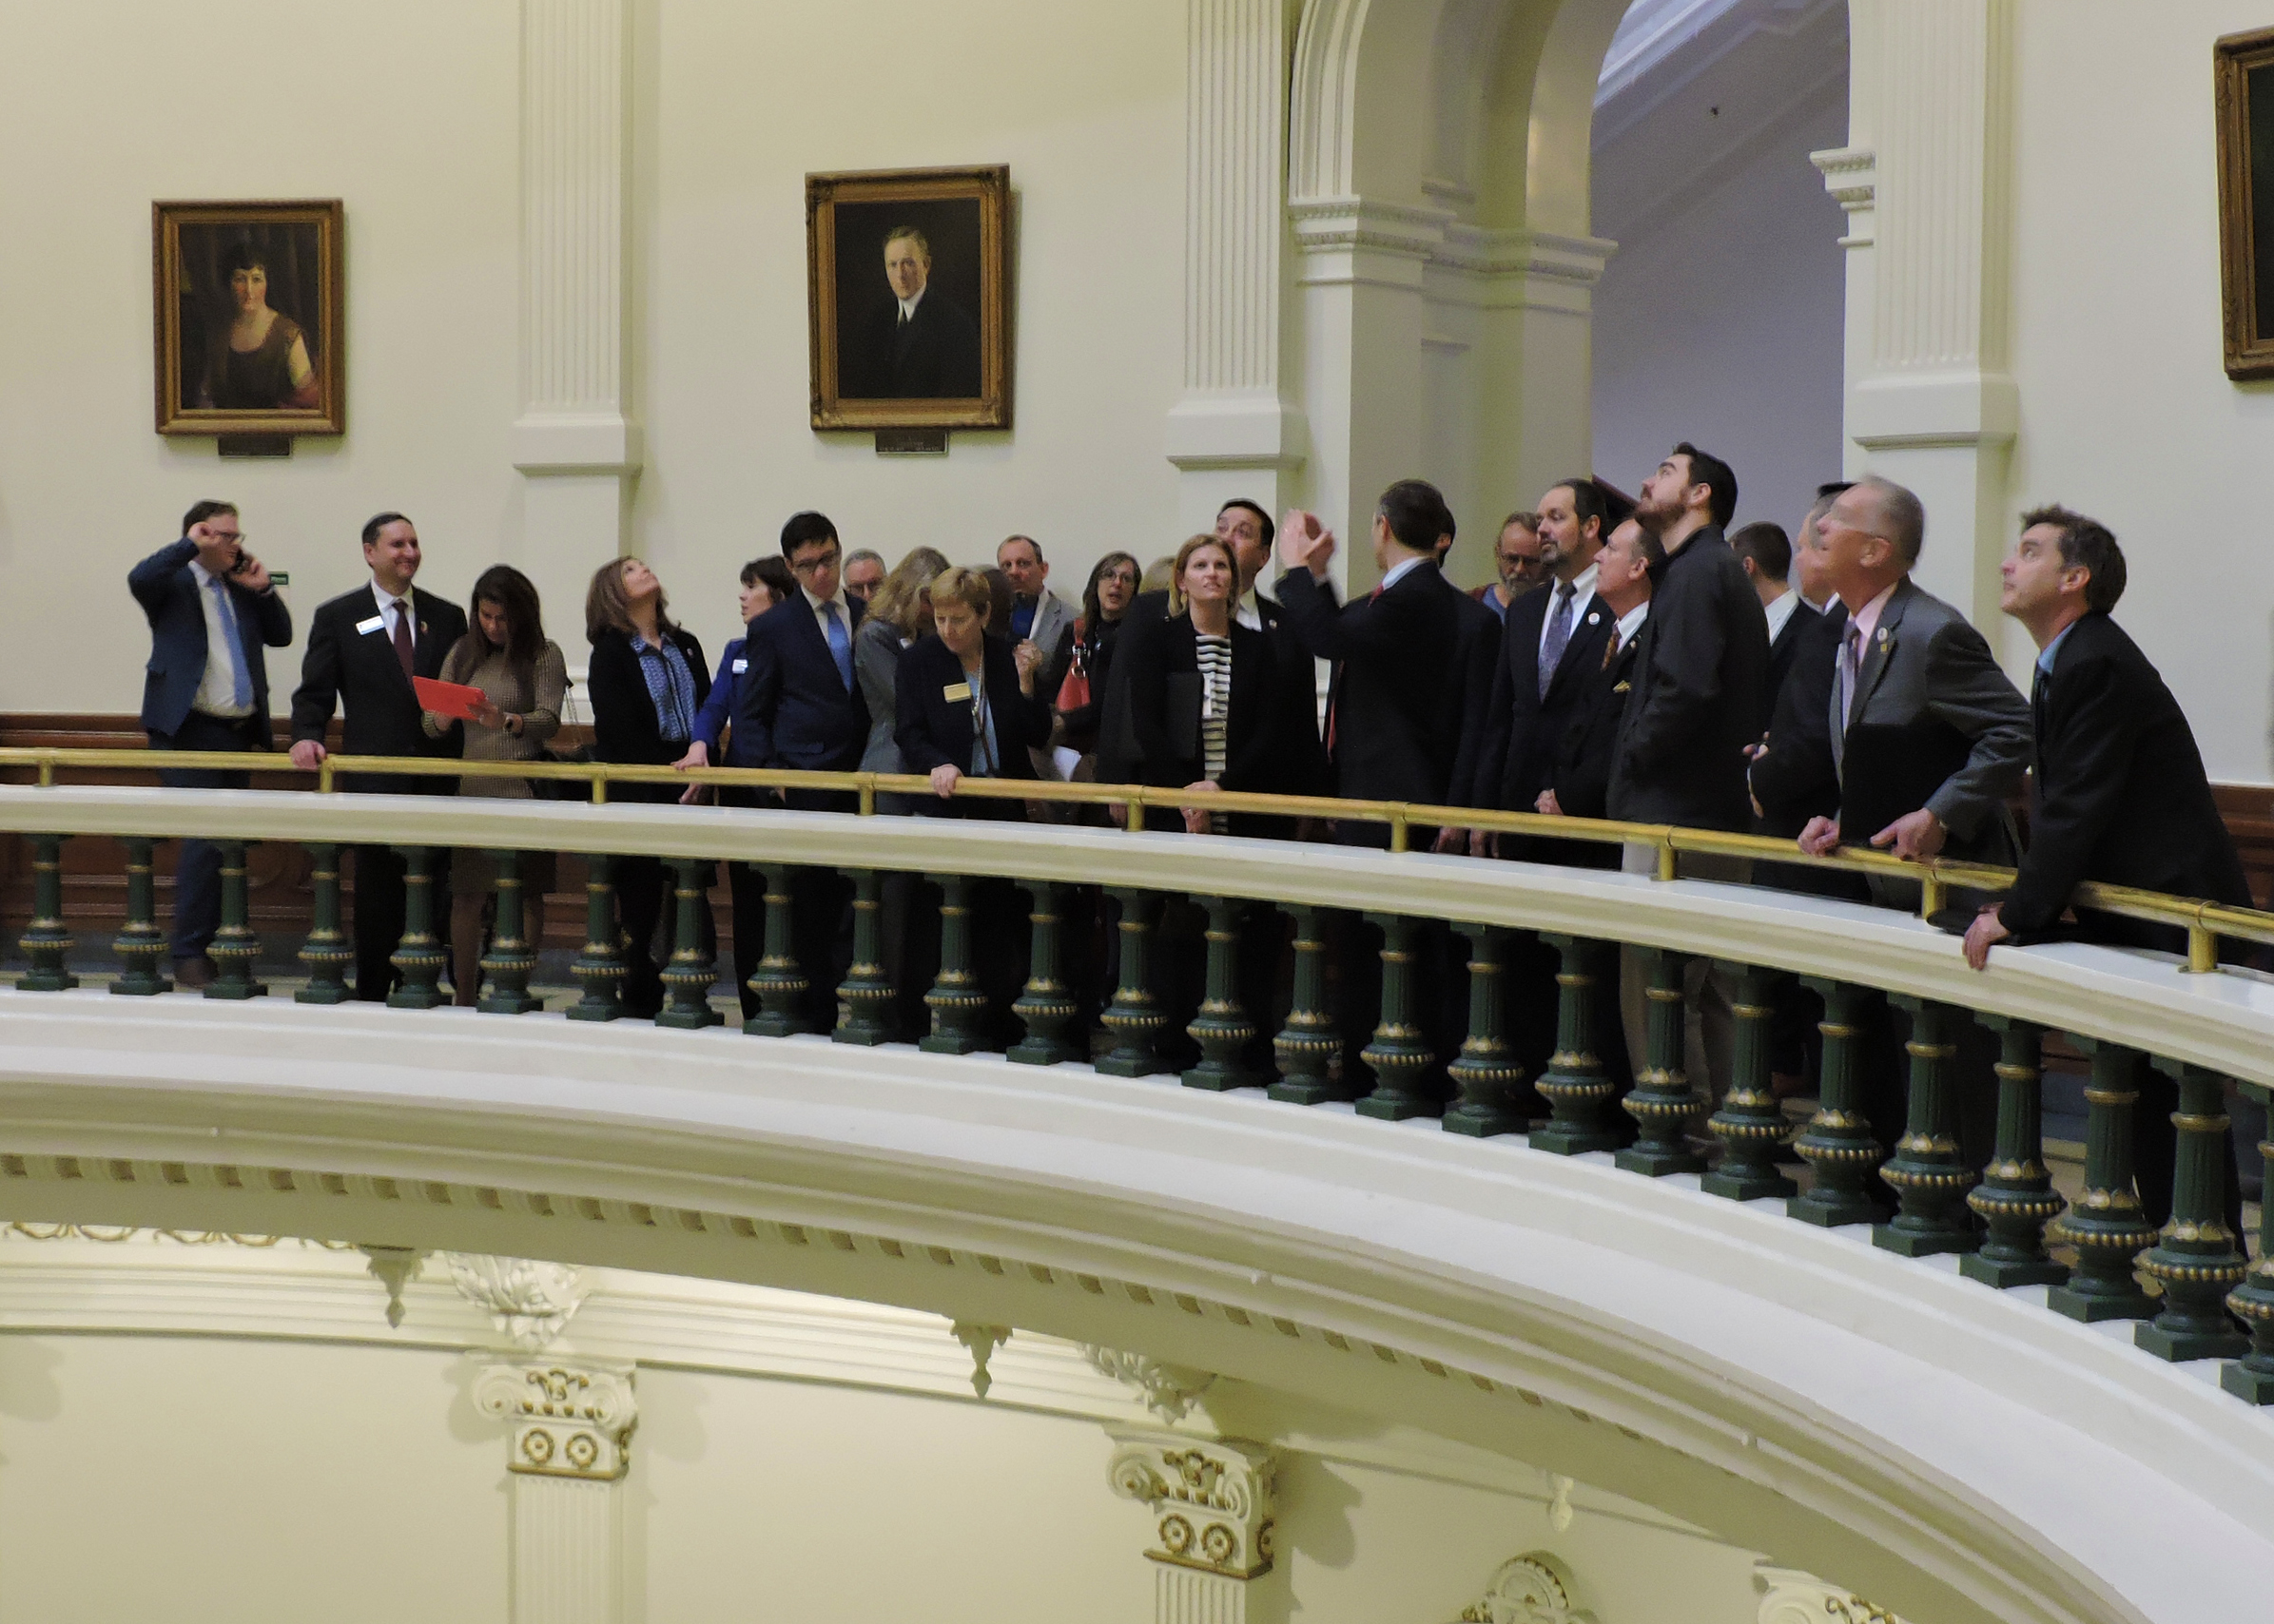 Senator Van Taylor explains some of the history behind the Texas Capitol.